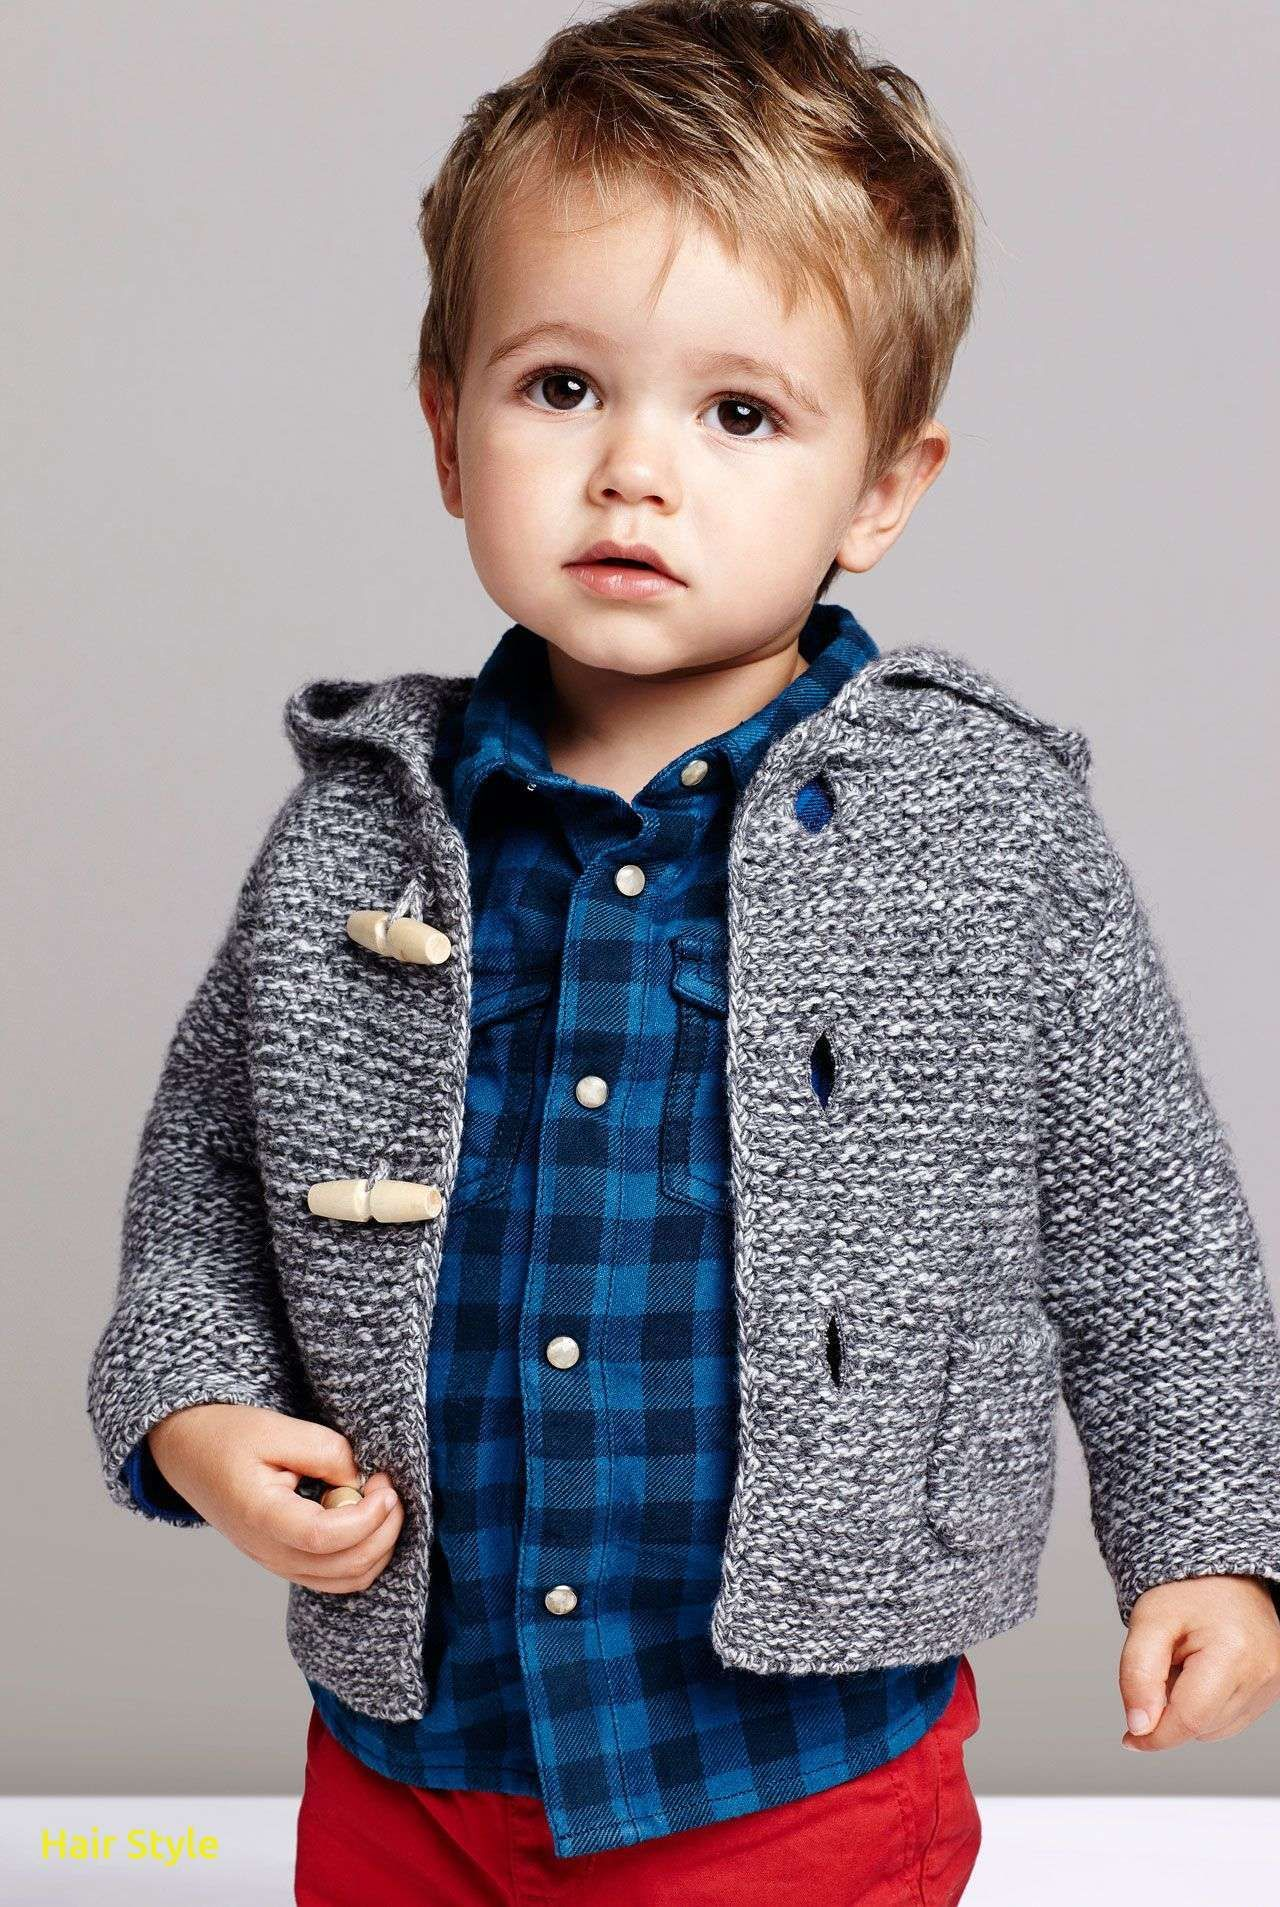 Affordable Kids Clothes Shopping Sites For Boys Boys Fashion Boutique Baby Boy Hairstyles Toddler Haircuts Toddler Hairstyles Boy